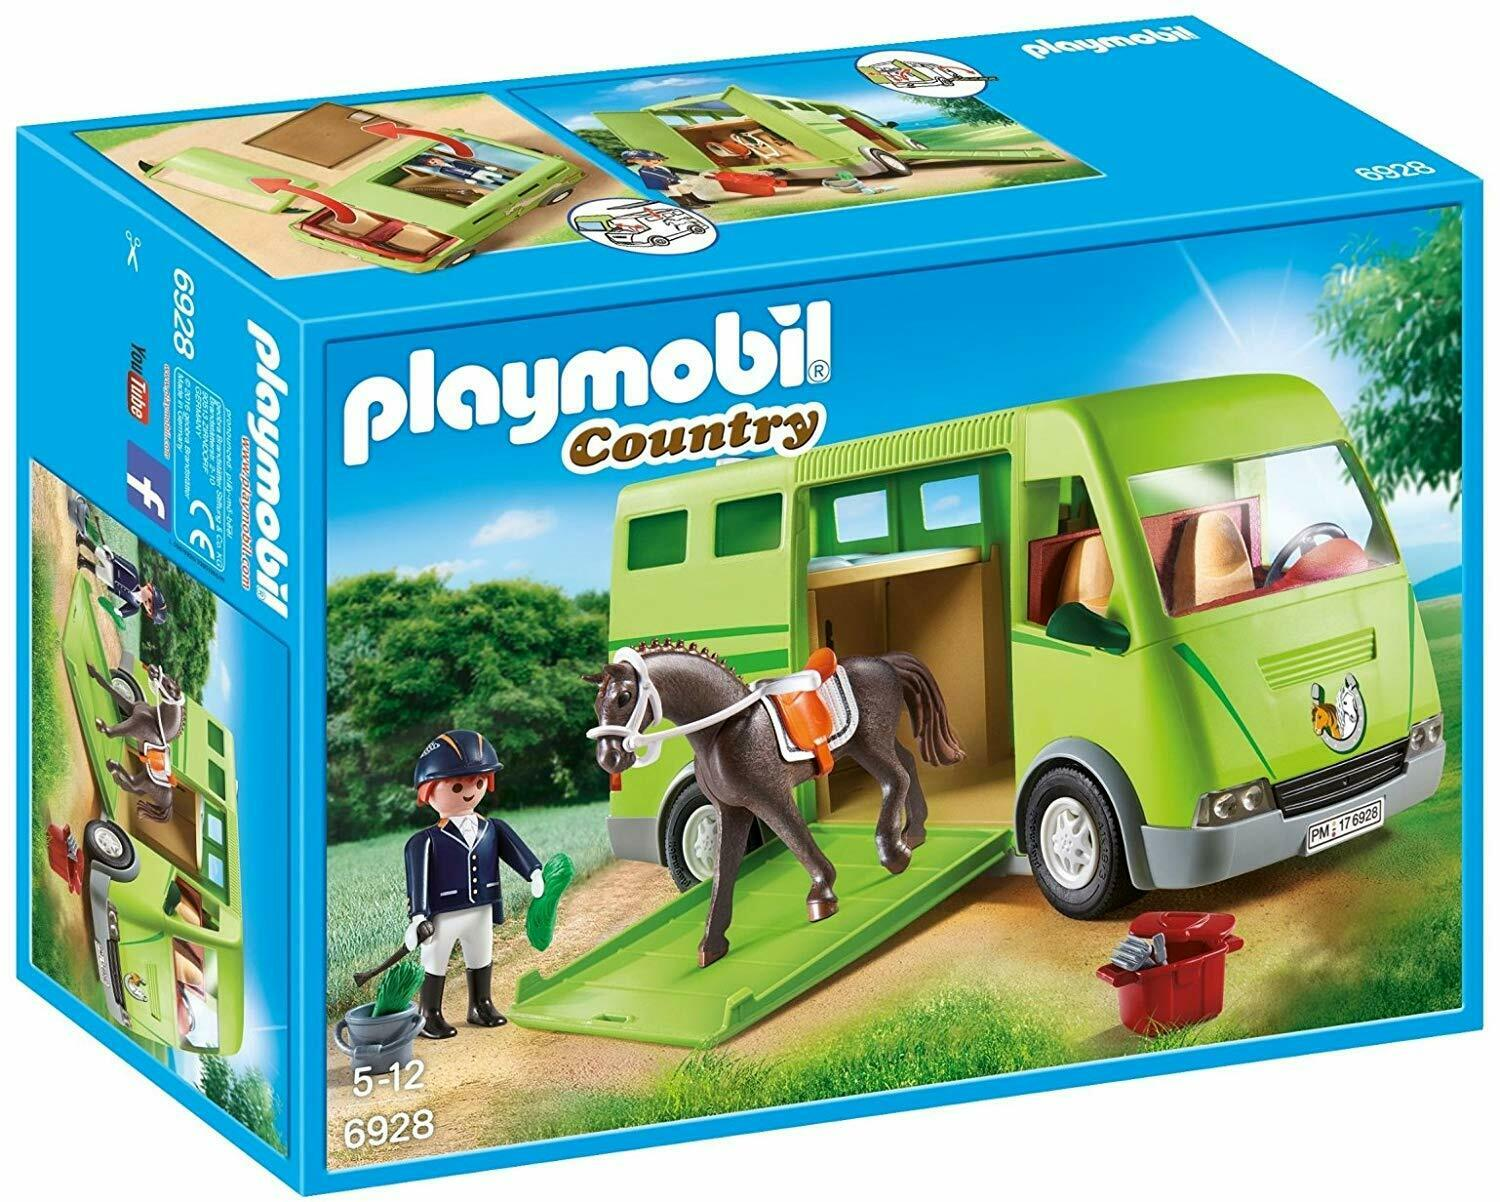 Playmobil Country Country Country Horse Box Opening Sliding Side Door Educational Kids Playset 28f8c4